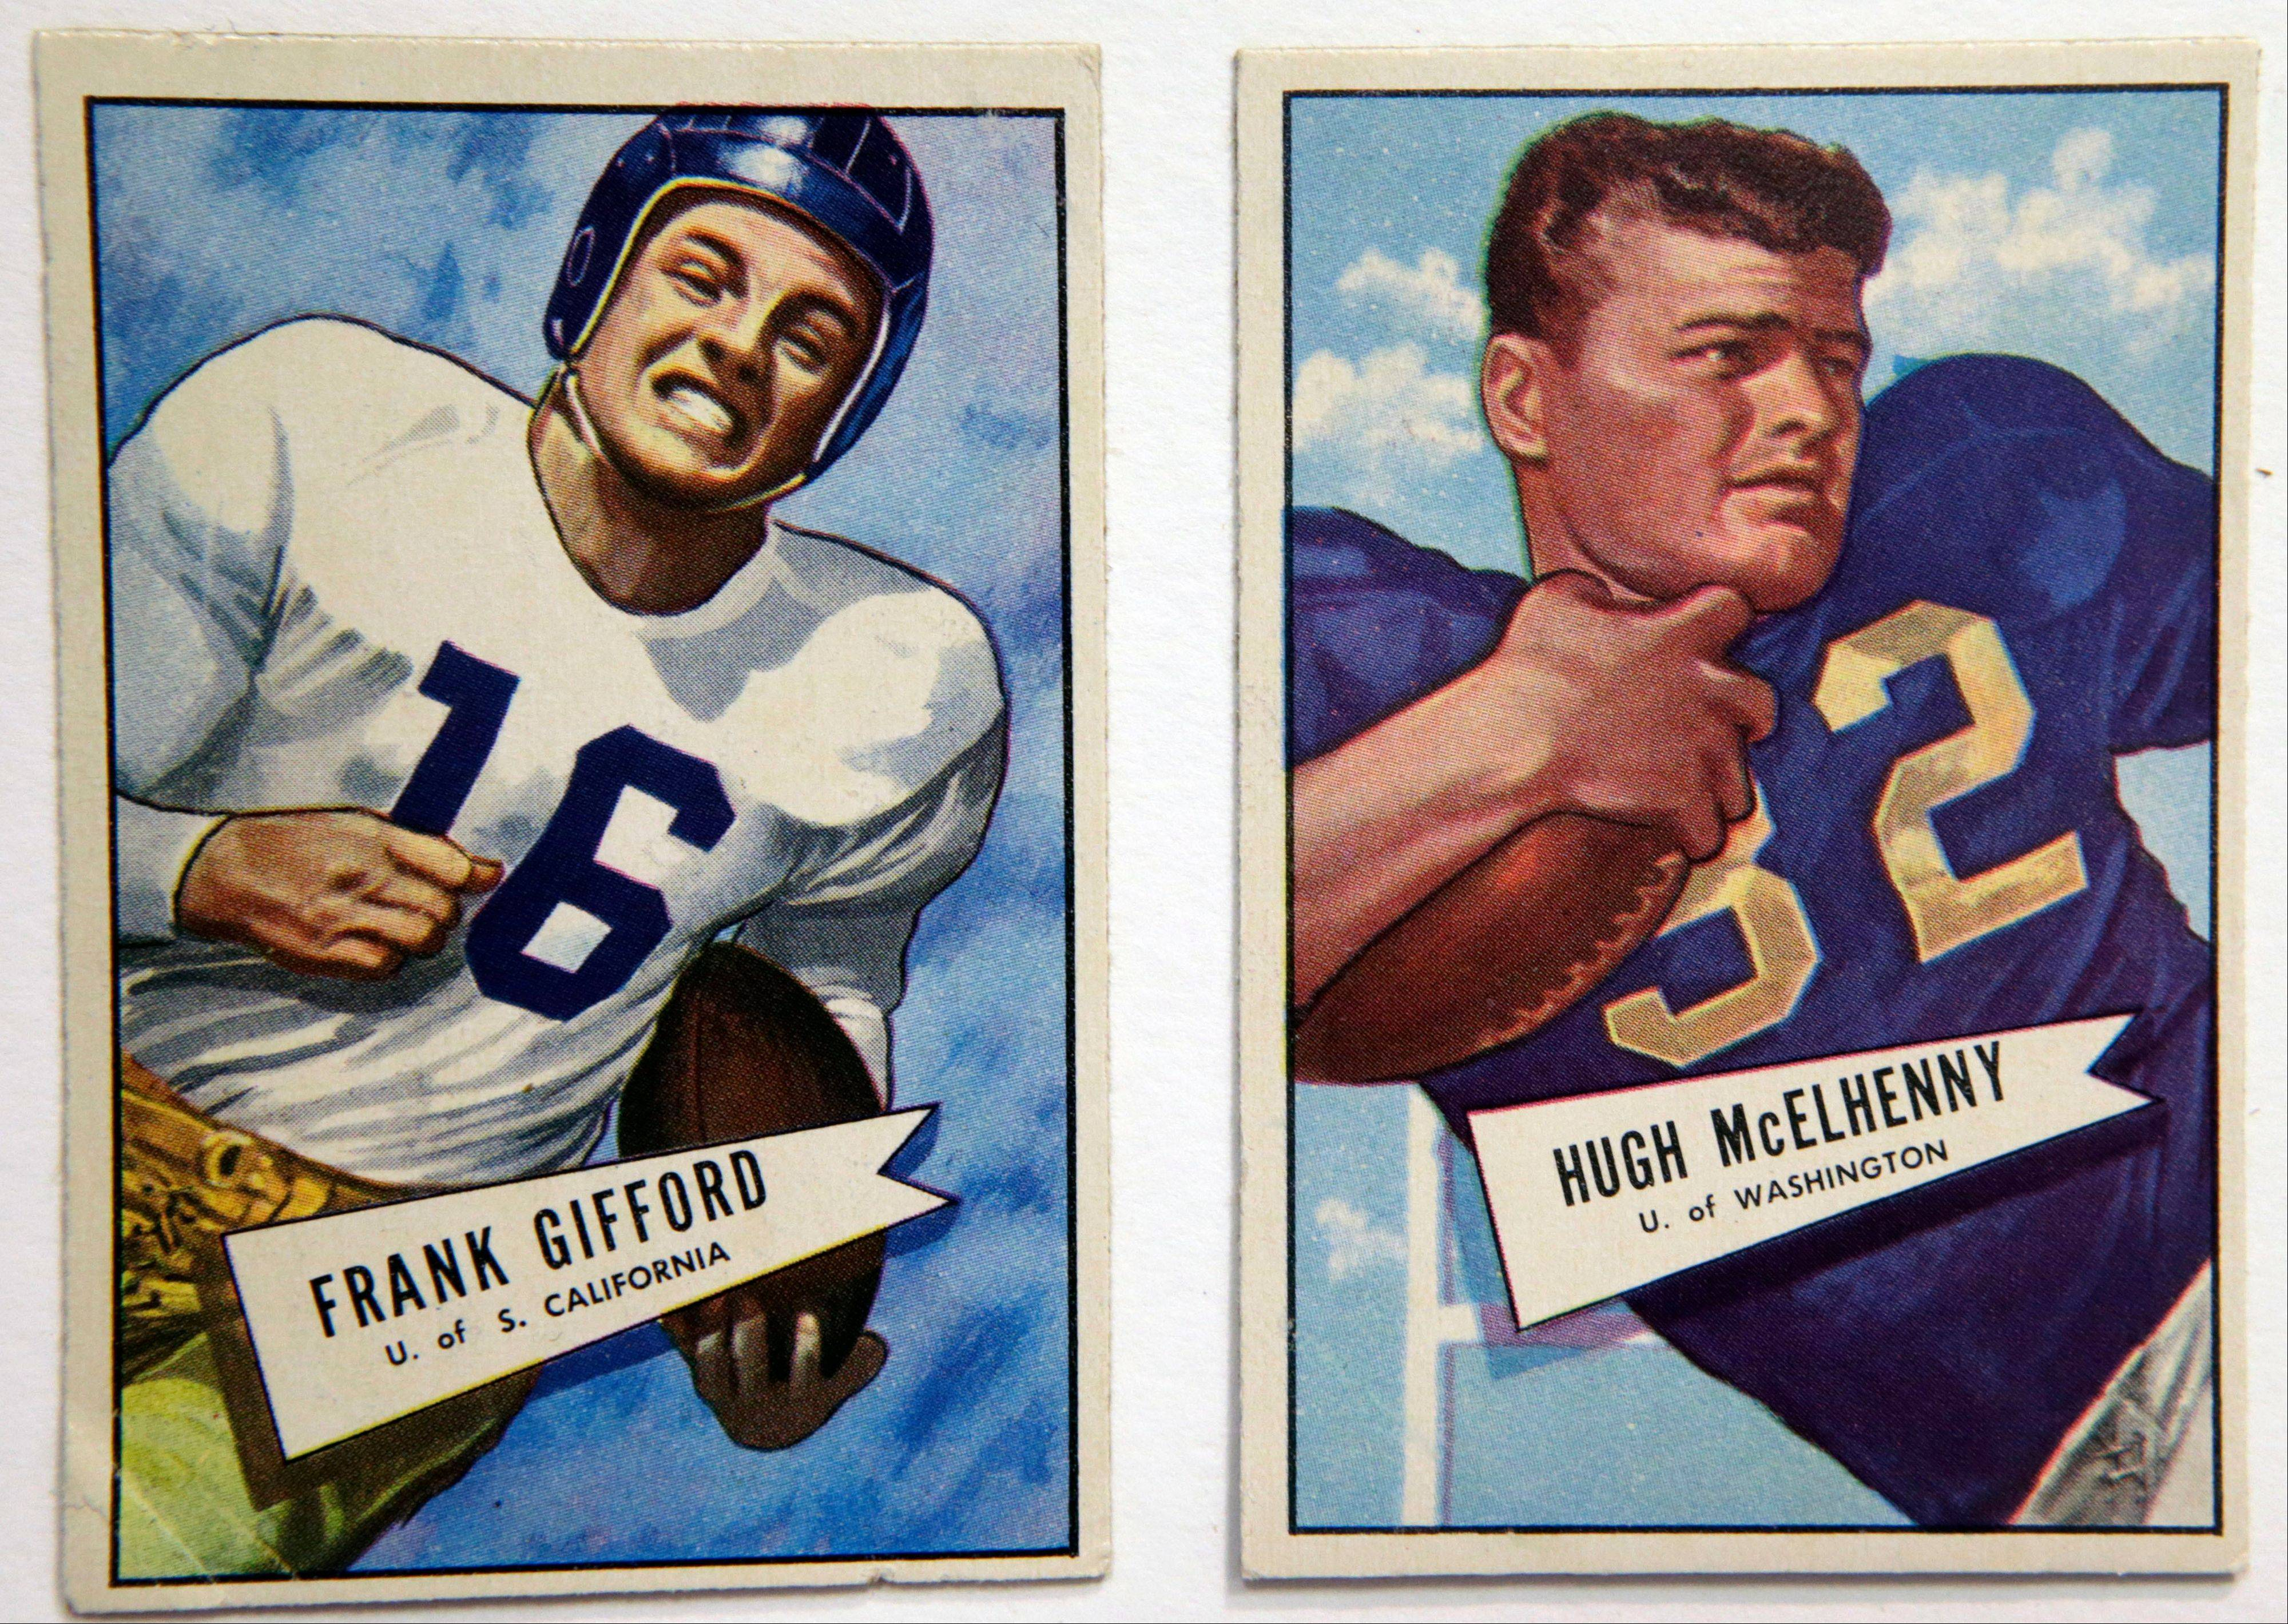 A University of Southern California 1952 card of football star Frank Gifford, the New York Giants' No. 1 draft pick, will be on display at the Metropolitan Museum of Art in New York. The cards are part of a pop-up exhibition at the Met celebrating football's history through the ages with vintage trading cards.